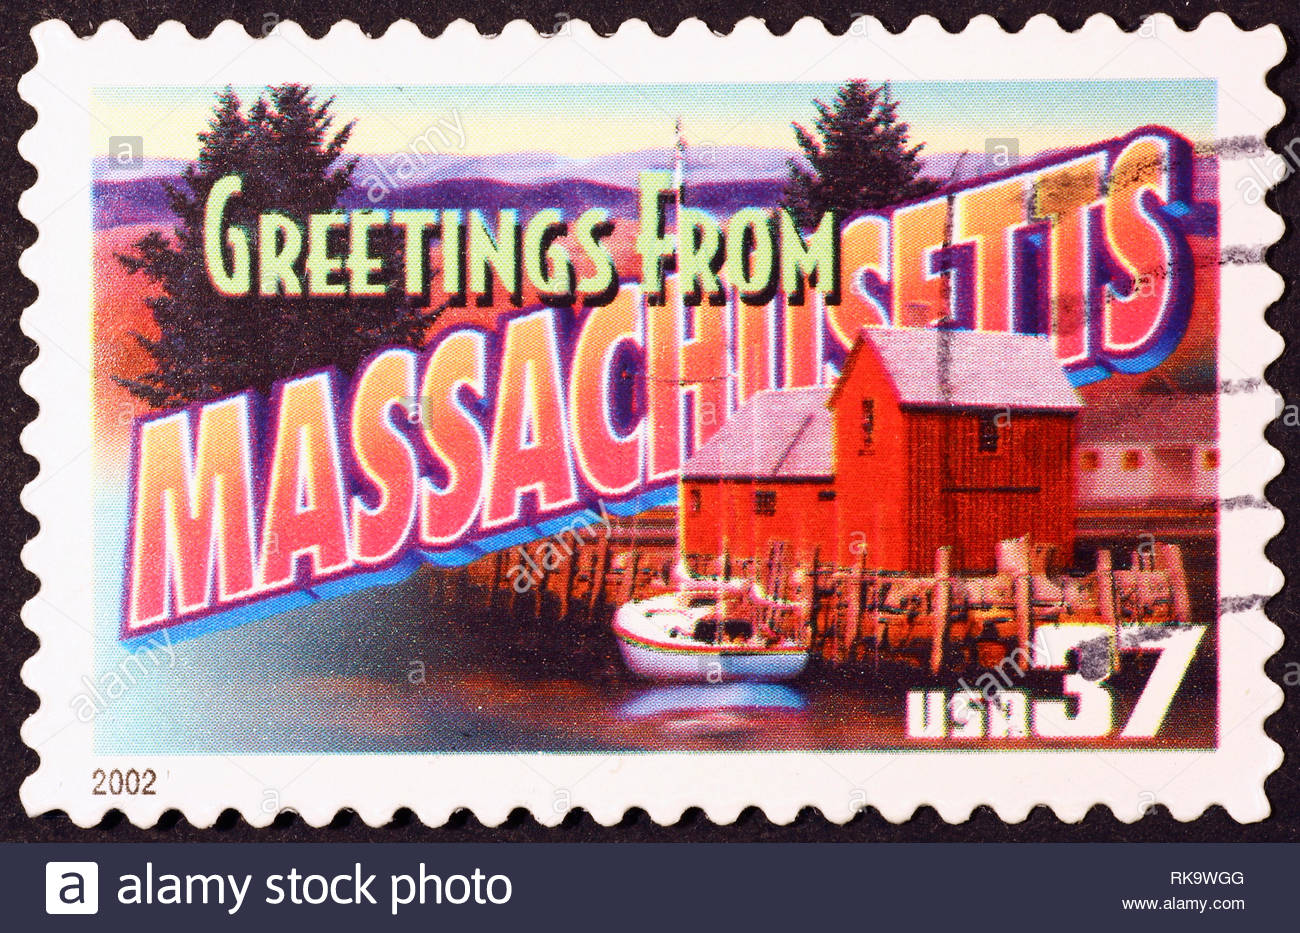 Greetings from Massachussetts postcard on stamp - Stock Image